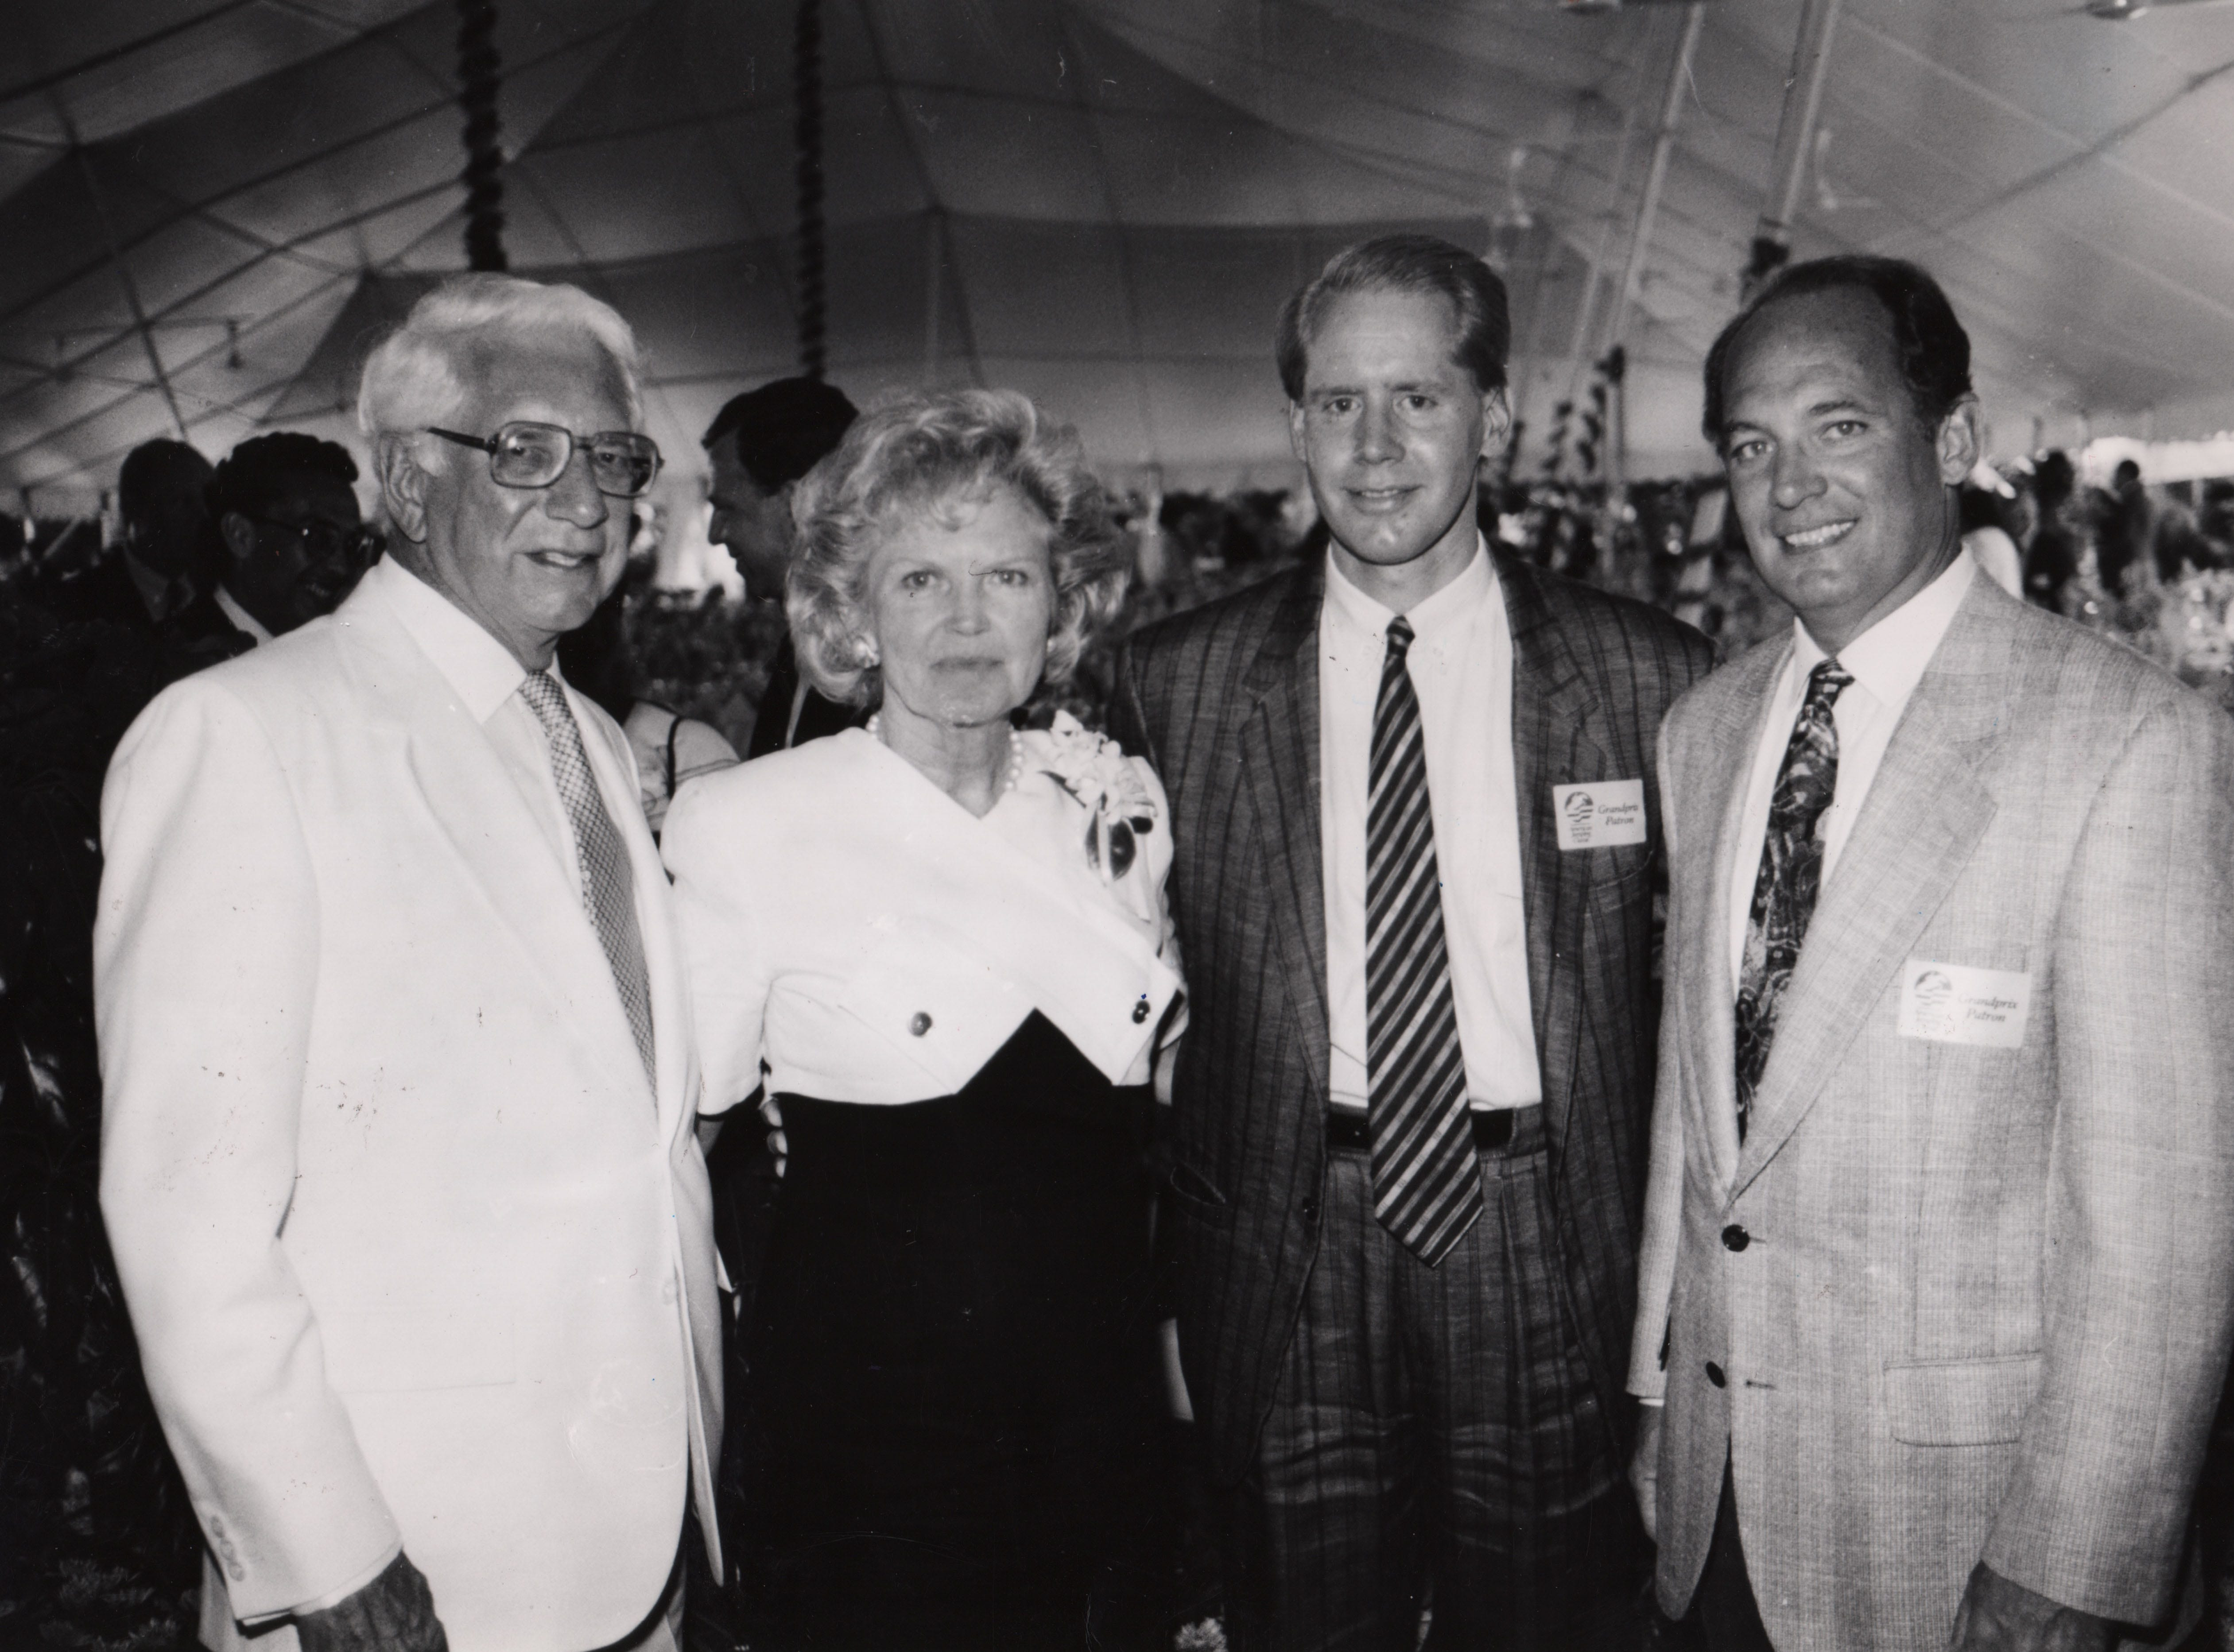 At the American Jumping Classic in 1991 (from left): Carl Lindner Jr., Edith Lindner, Carl Lindner III and AJC president Roy Kuhnell.